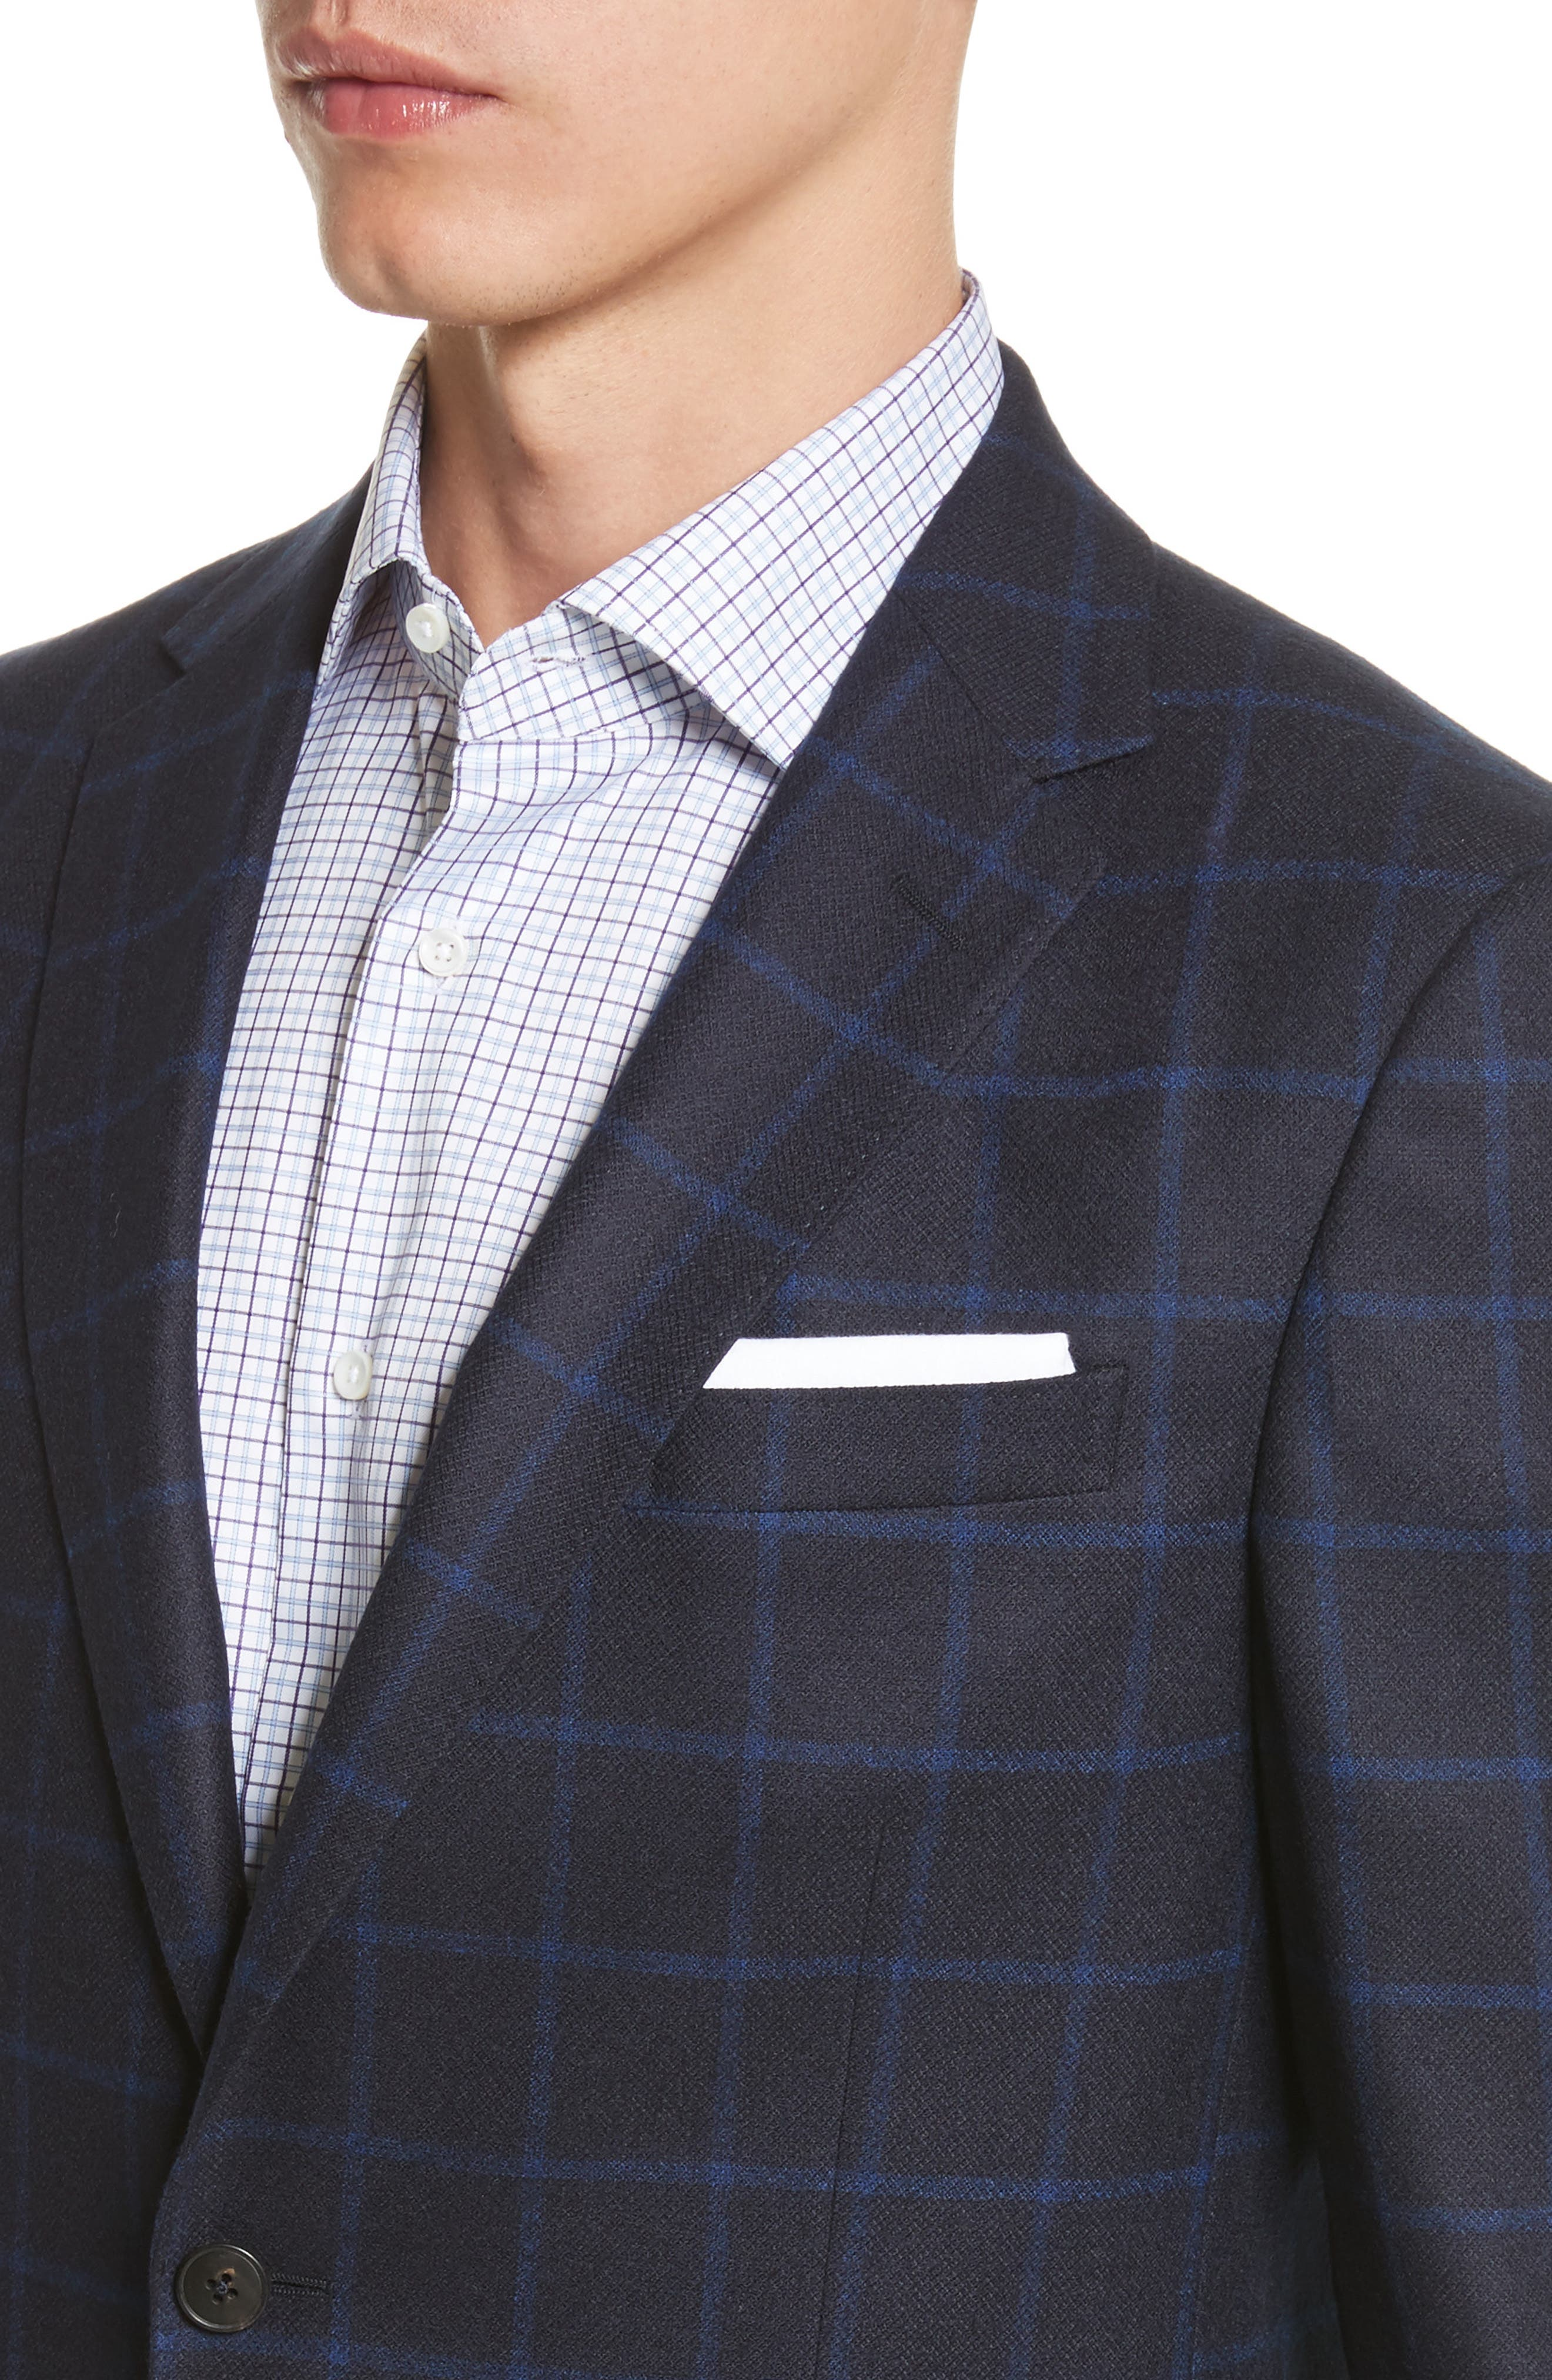 Classic Fit Check Wool Sport Coat,                             Alternate thumbnail 4, color,                             416